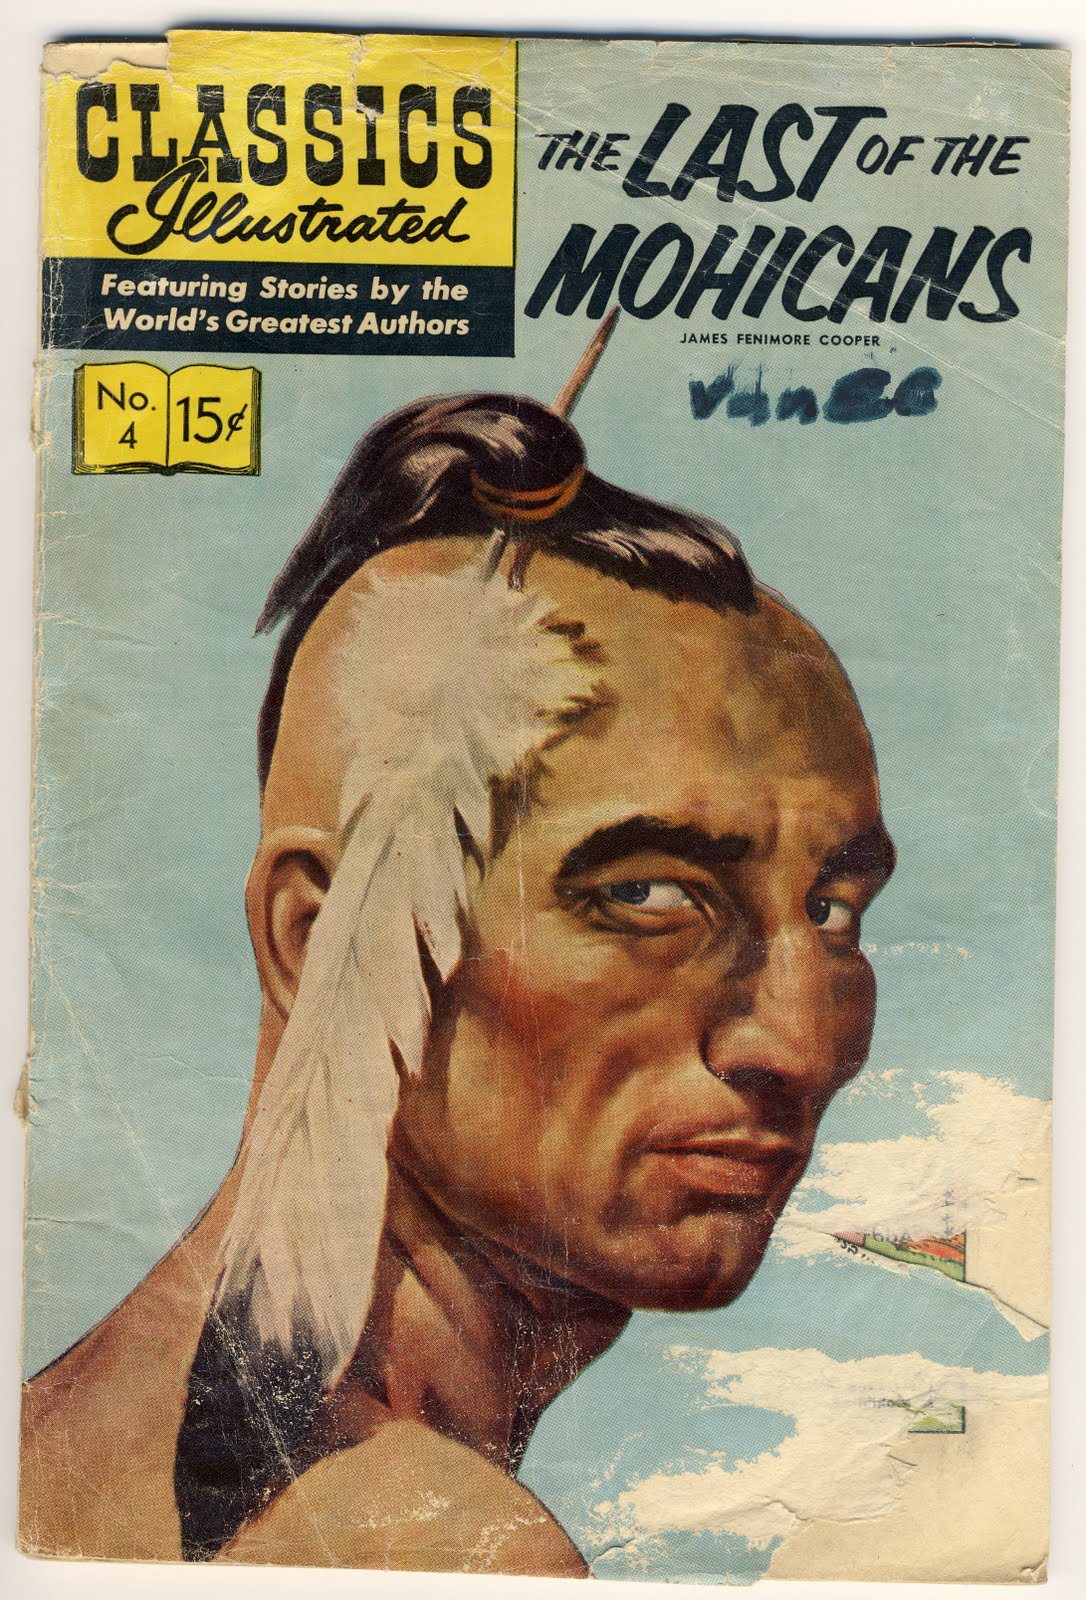 romanticism in the last of the mohicans essay